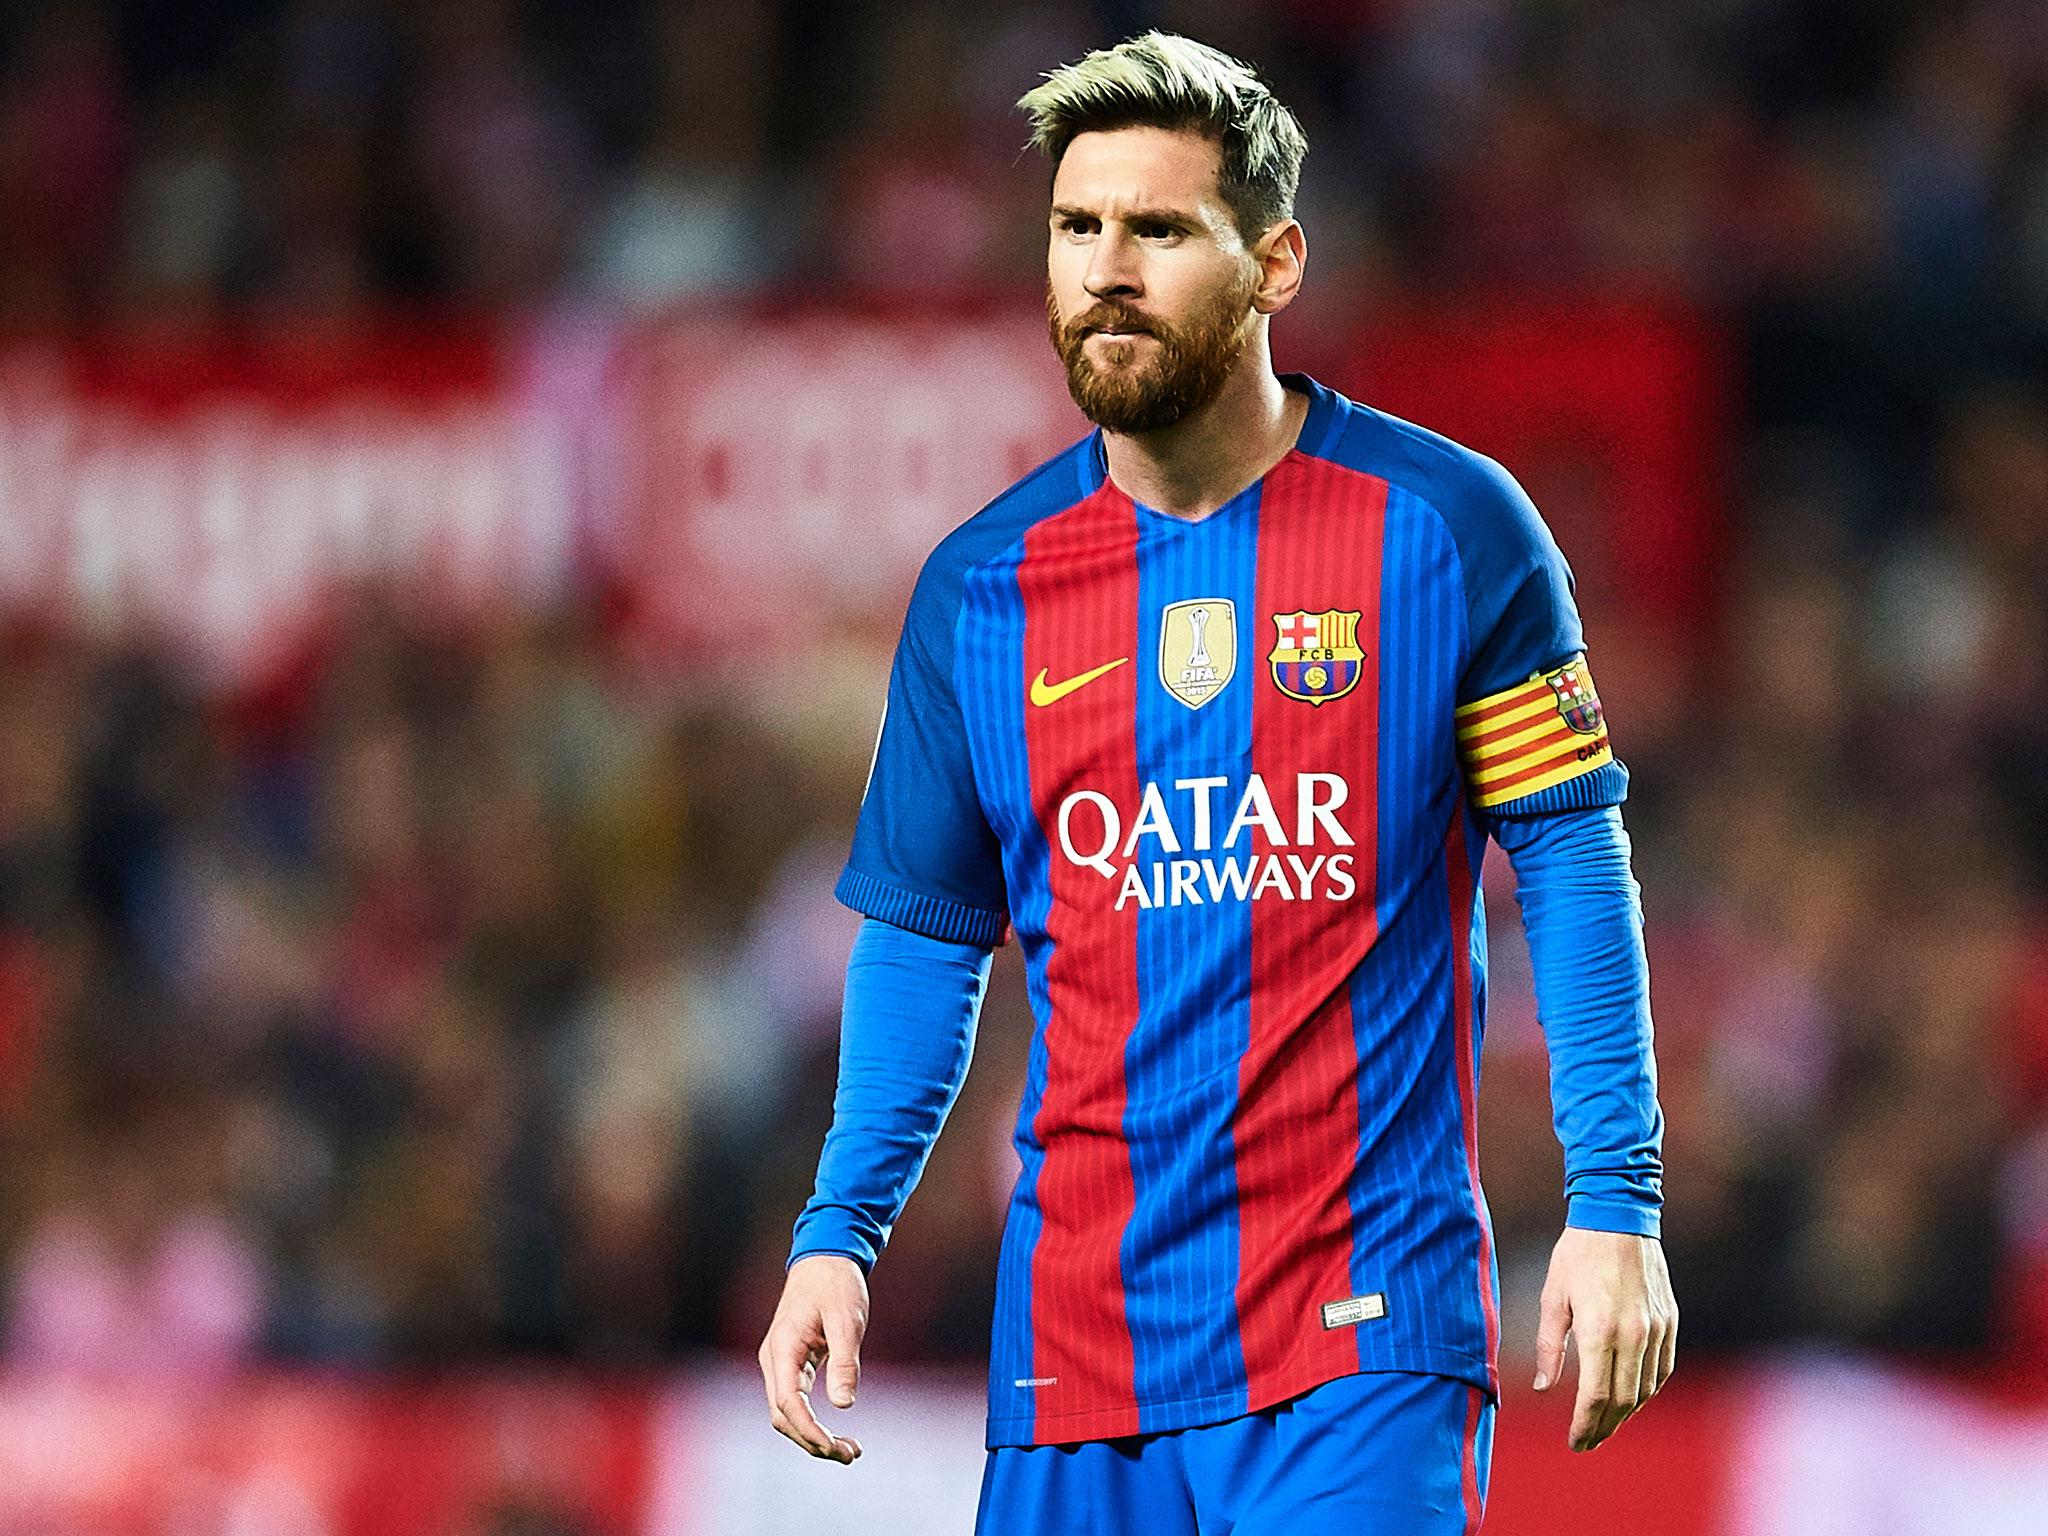 Lionel Messi - Biography